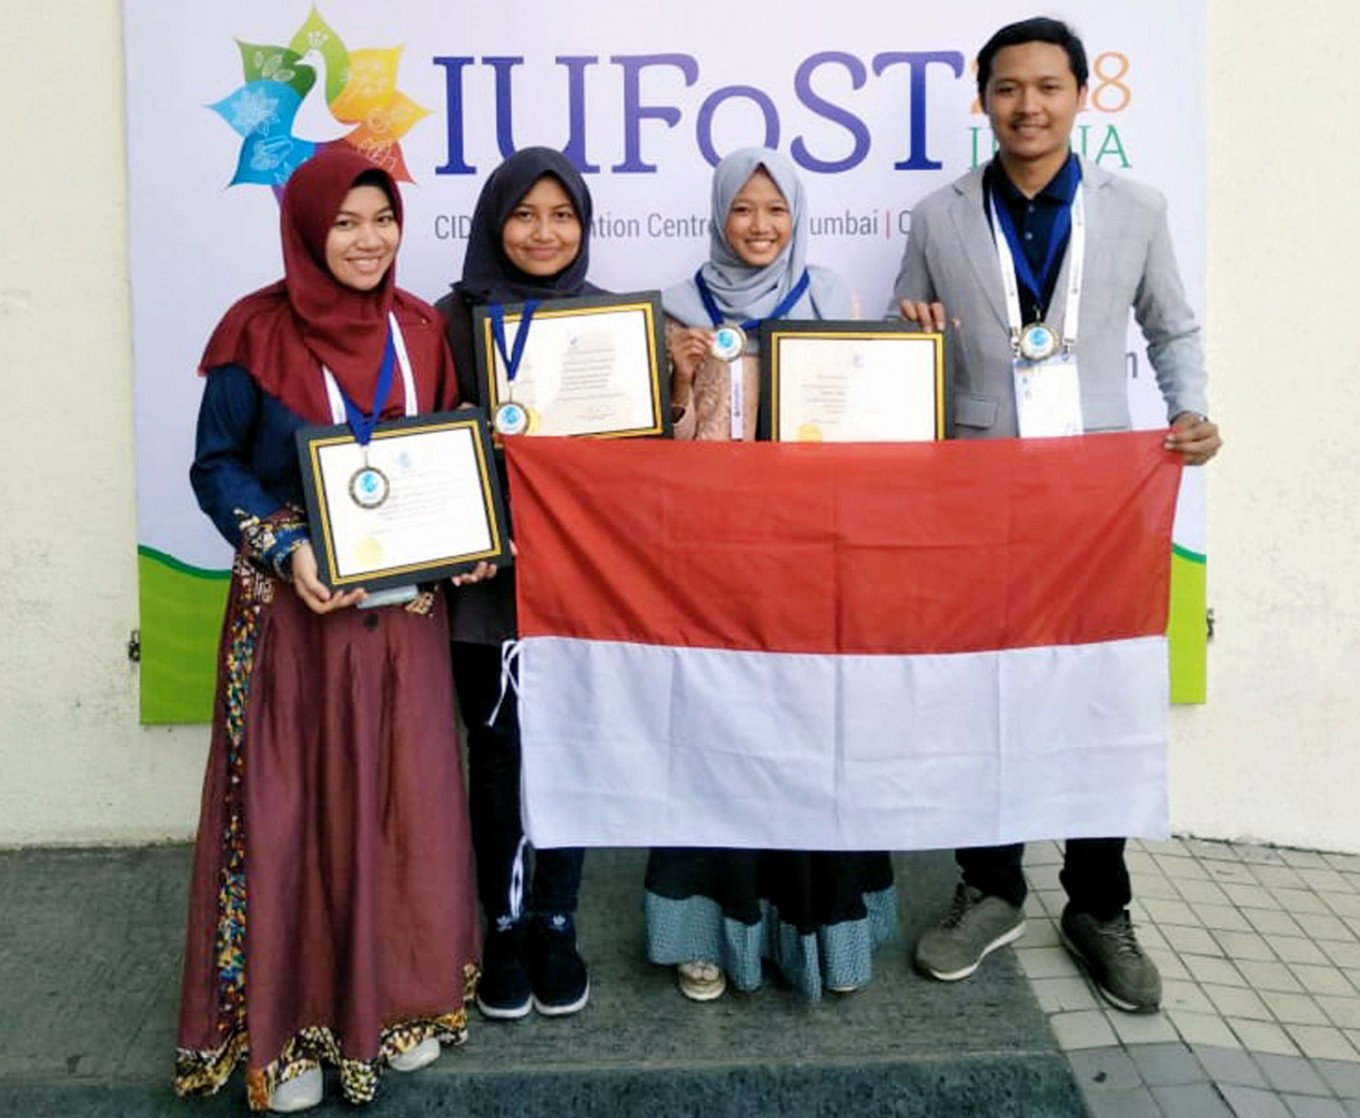 Alfisah Nur Annisa (kiri), Widya Nur Habiba (kiri kedua), Annisa Aurora Kartika (kanan ke dua) dan Joko Tri Rubiyanto (kanan) berpose dengan penghargaan yang mereka menangkan di International Union of Food Science and Technology (IUFoST) 2018 Pengembangan Produk Kompetisi di Mumbai, India, pada 27 Oktober (Sumber: Fakultas Teknologi Pertanian, Universitas Brawijaya)